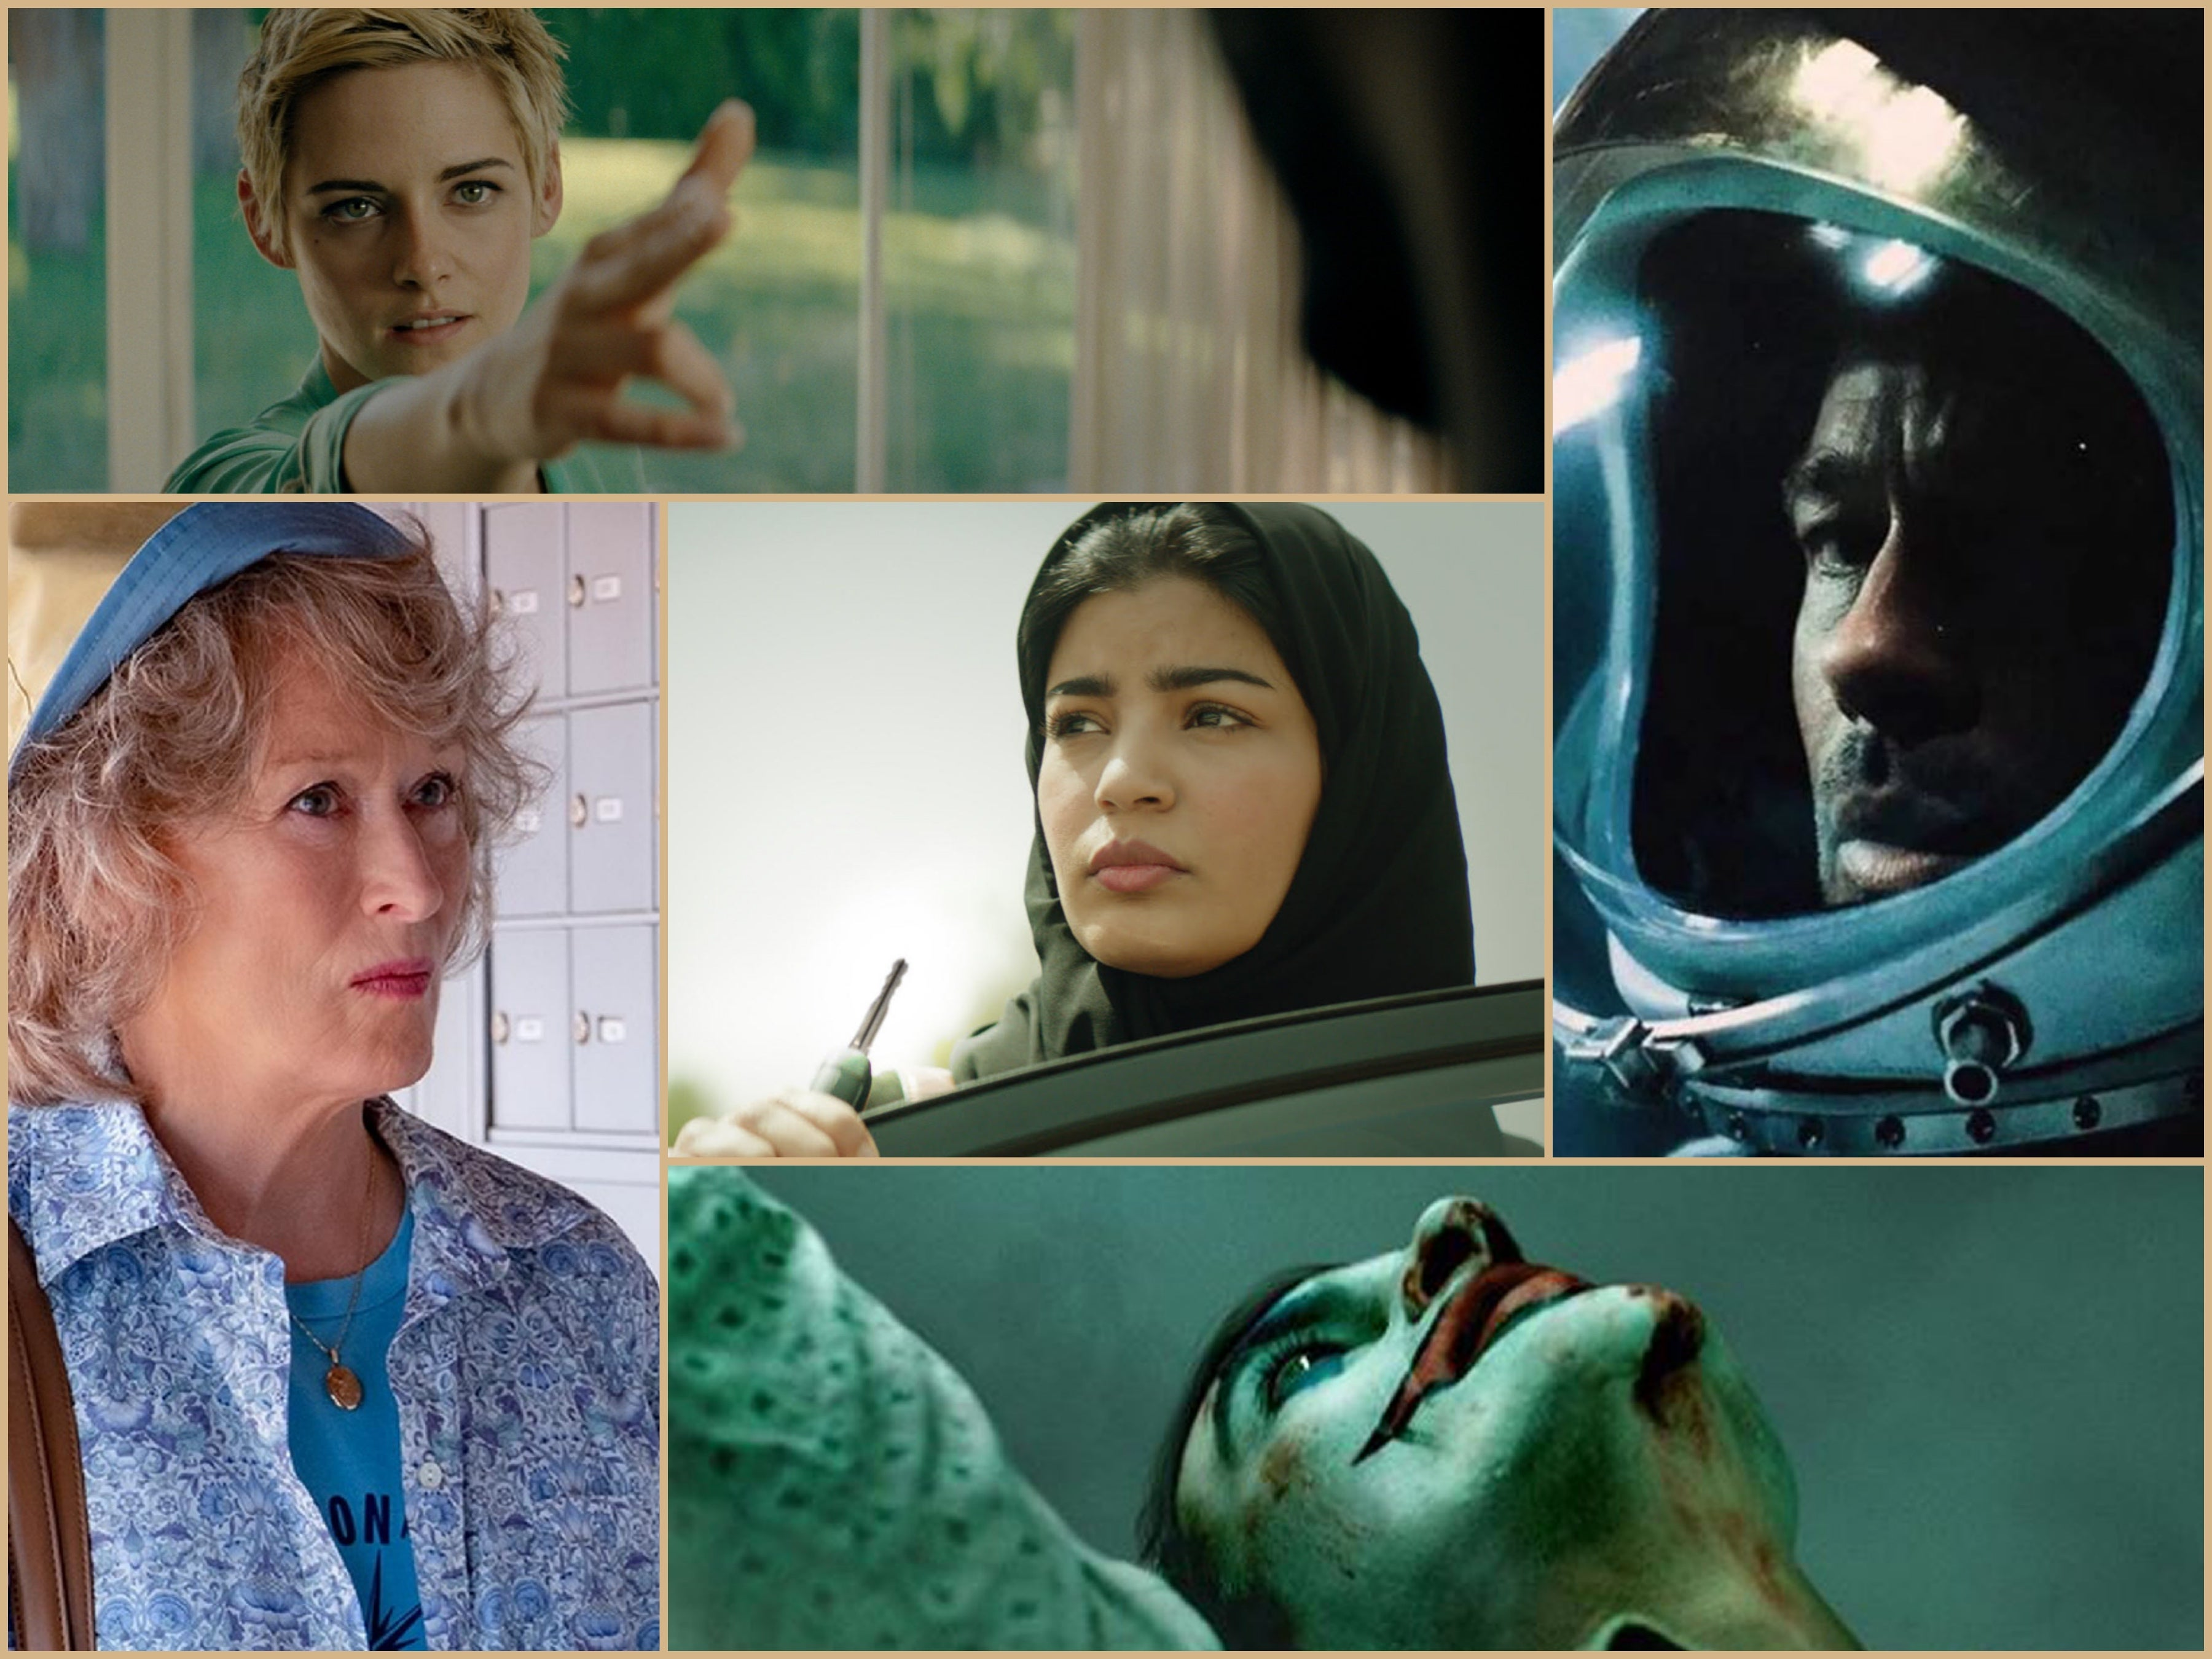 Films from the 2019 Venice Film Festival